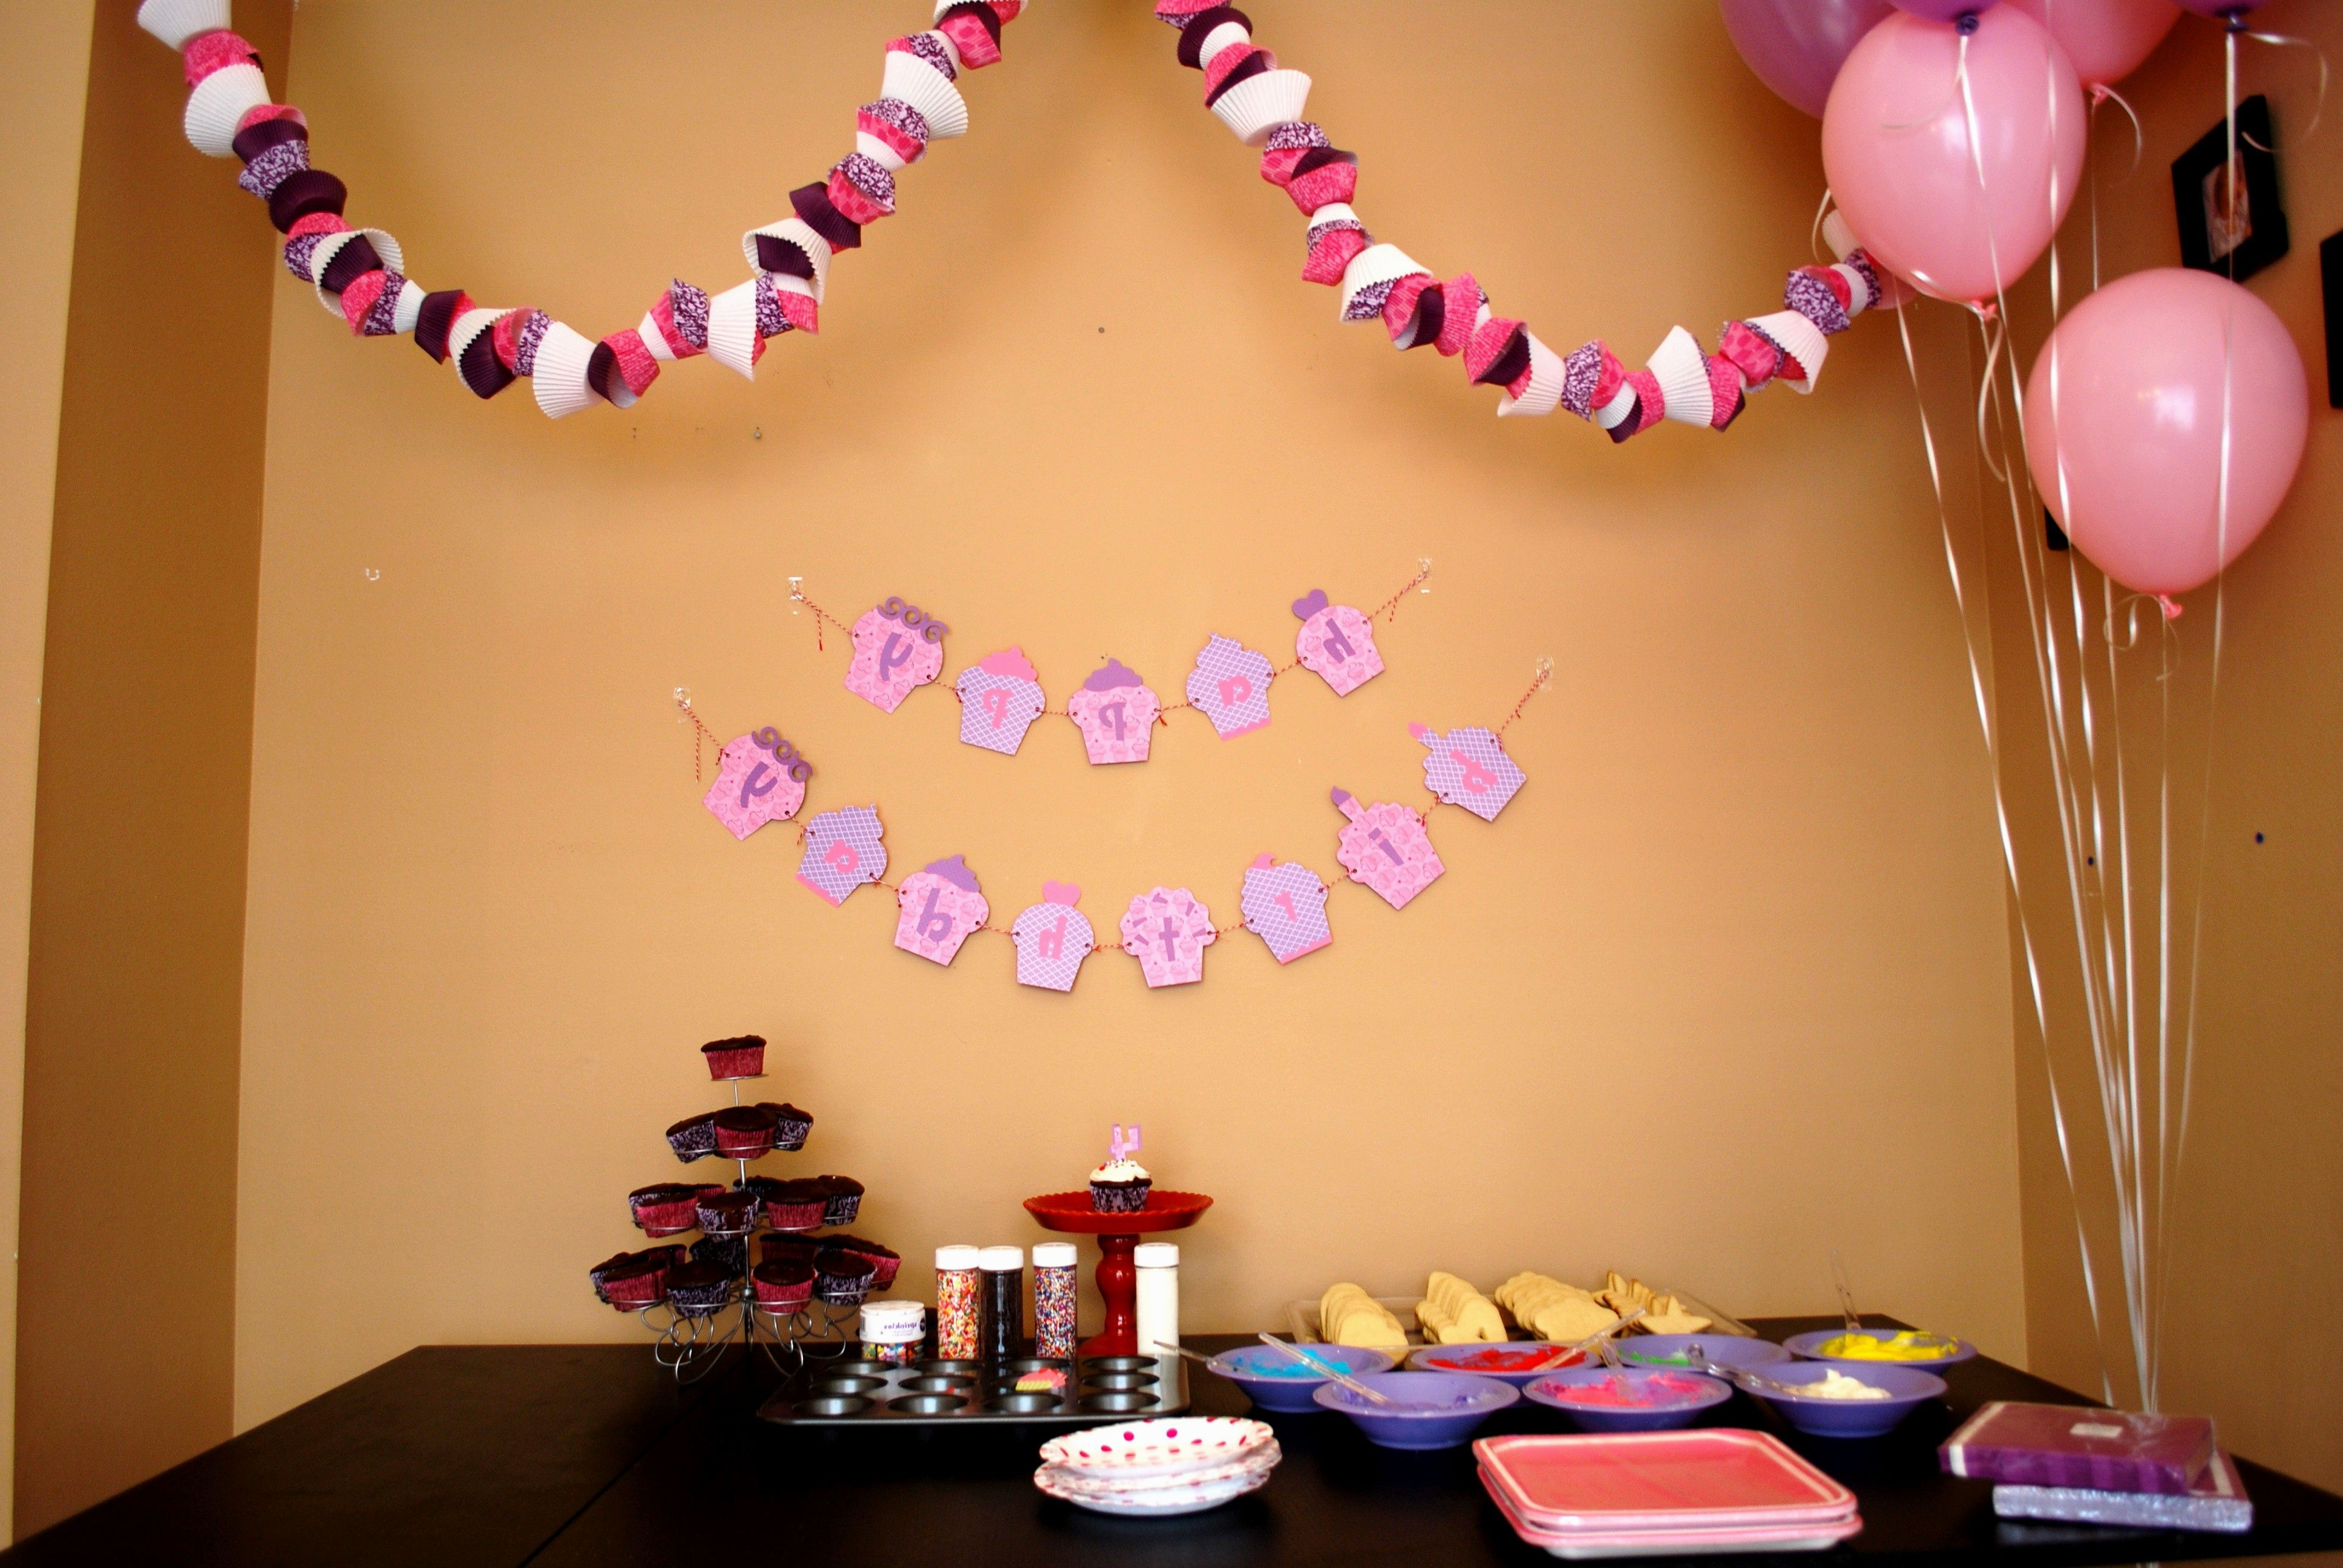 Marvellous Birthday Decoration For Husband At Home 0 Along ...